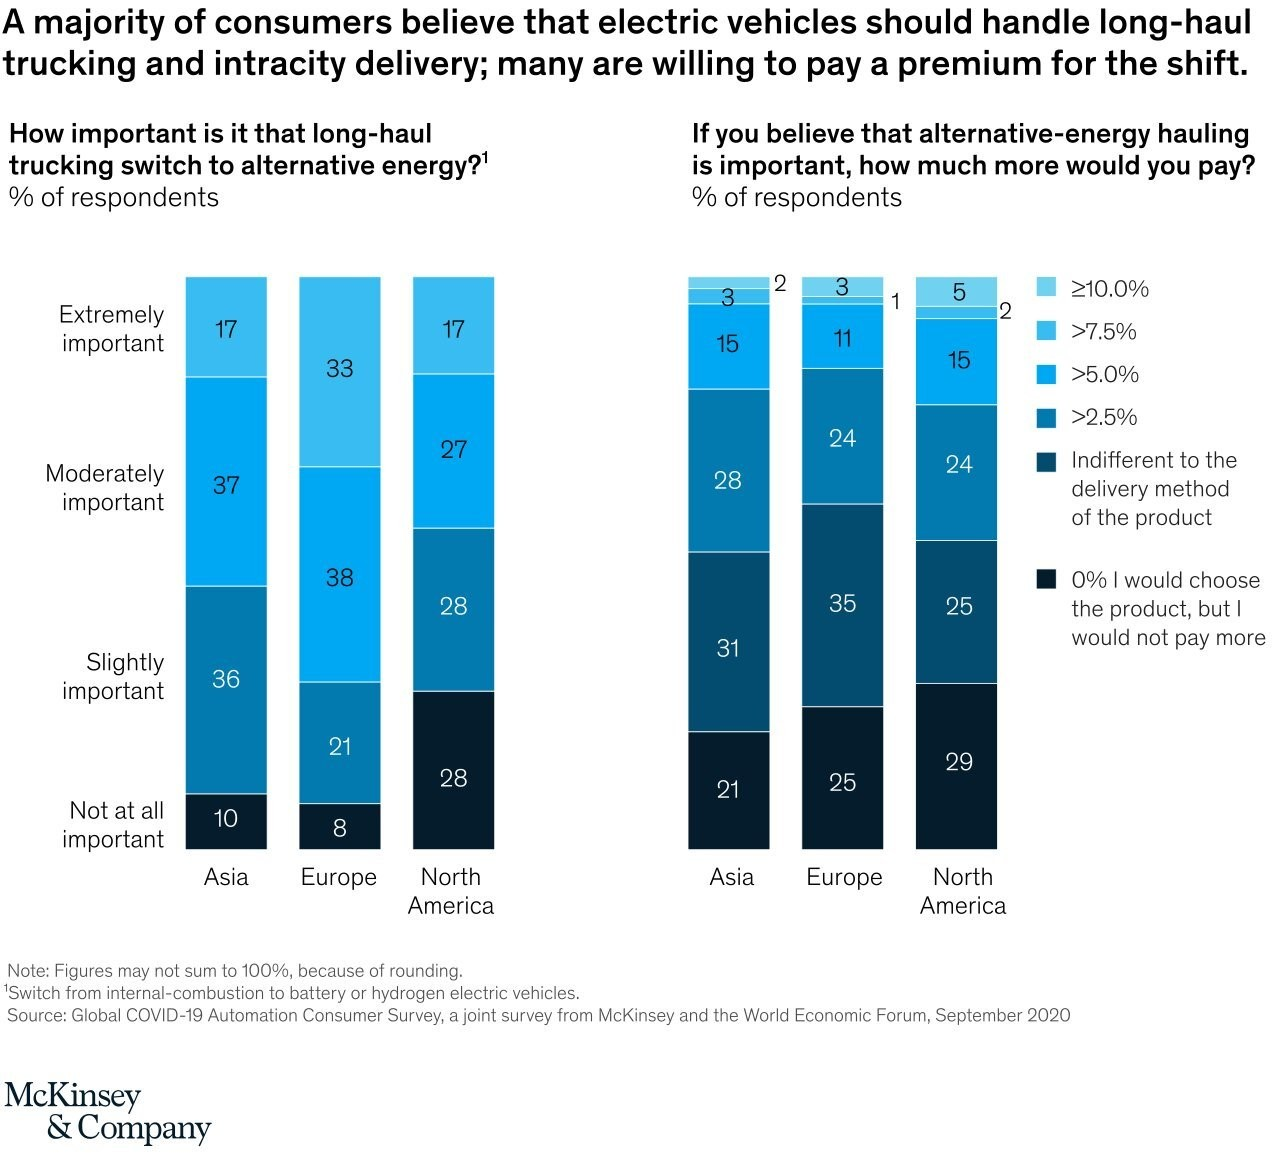 a chart showing that a majority of consumers believe that electric vehicles should handle long-haul trucking and intracity delivery; many are willing to pay a premium for the shift